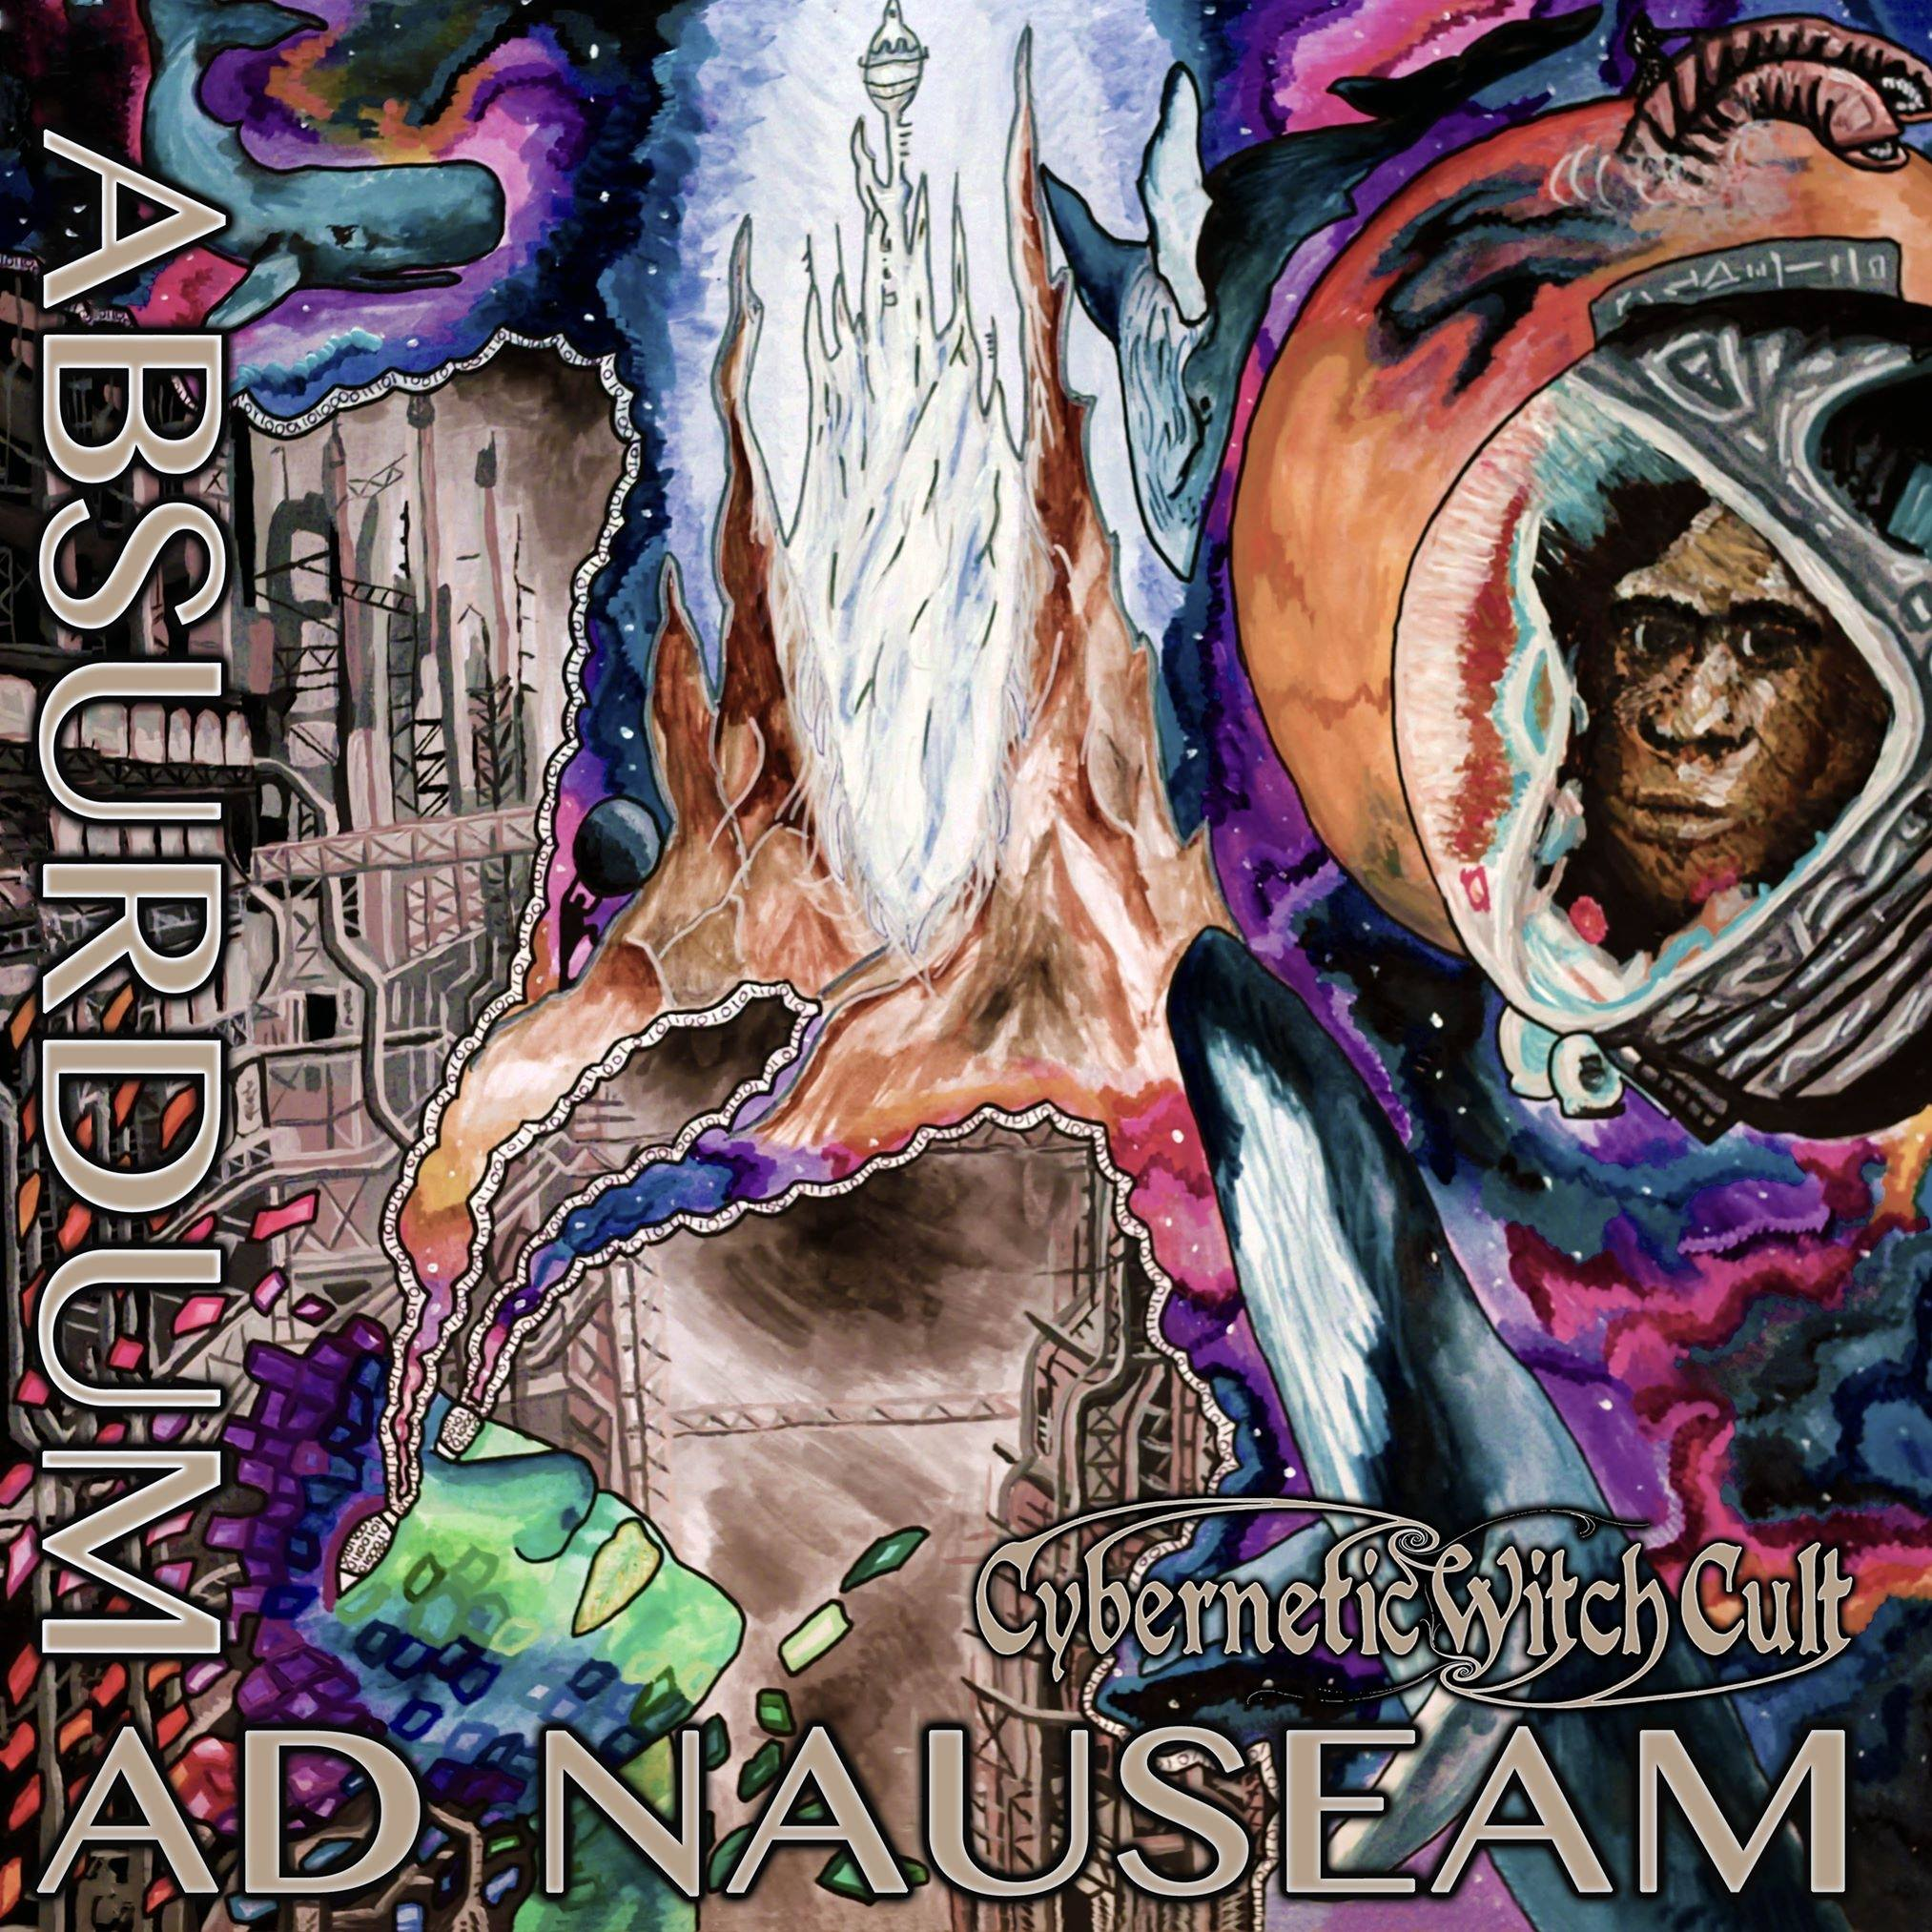 cybernetic witch cult absurdam ad nauseam